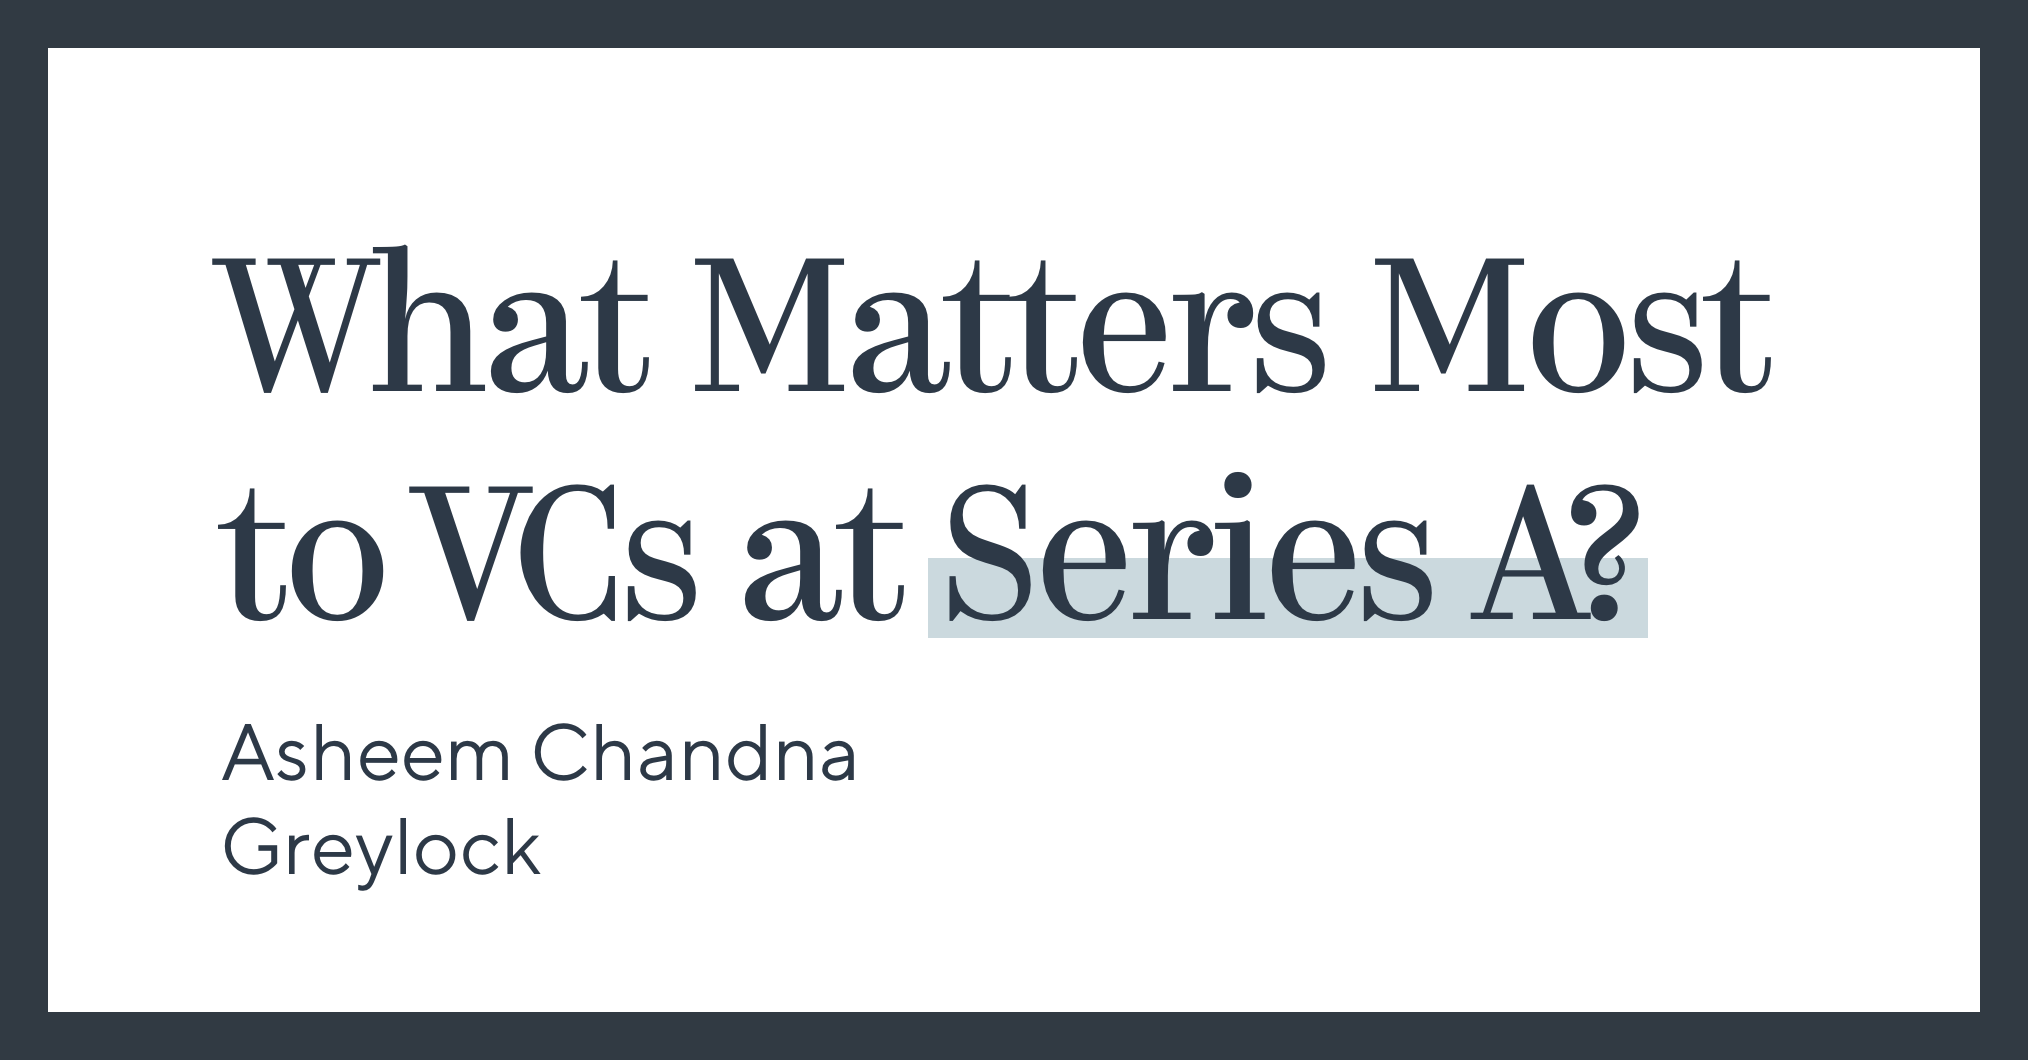 What Matters Most to VCs at Series A?